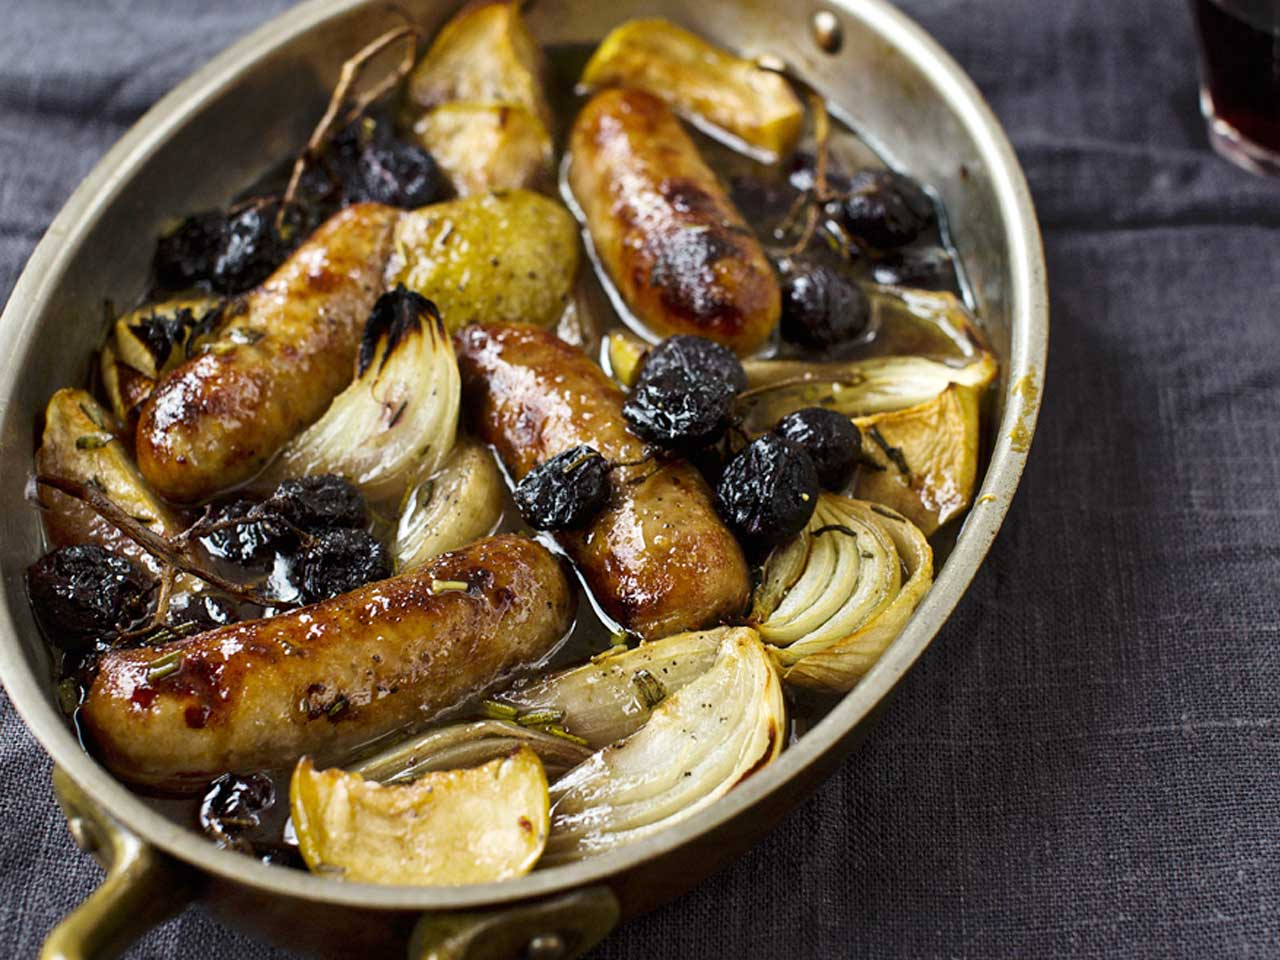 Sausages roasted with apples, grapes and sherry